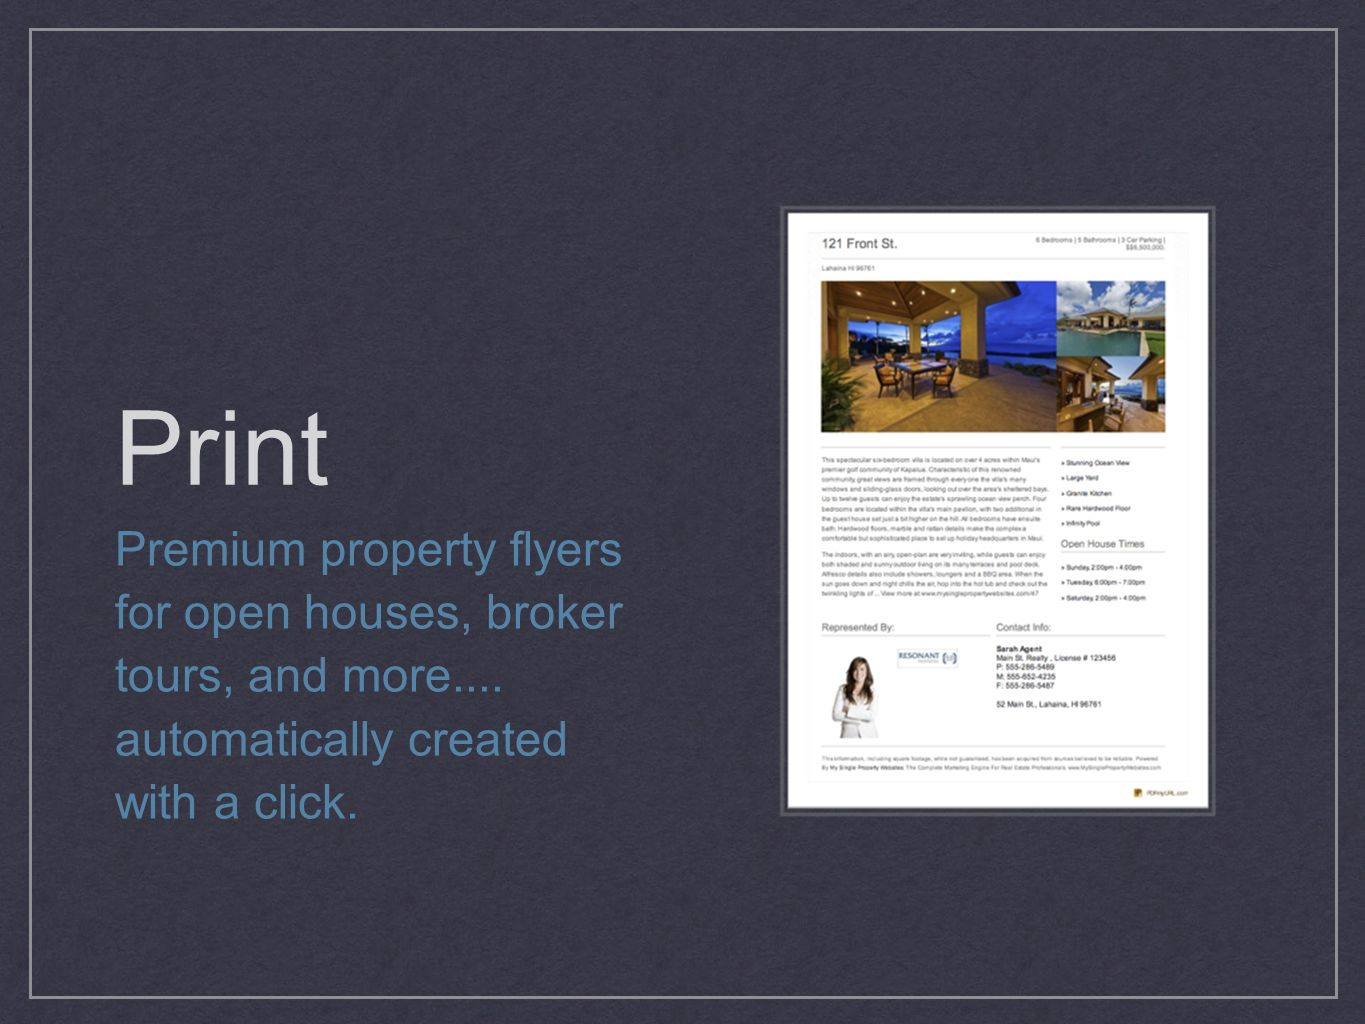 Print Premium property flyers for open houses, broker tours, and more.... automatically created with a click.